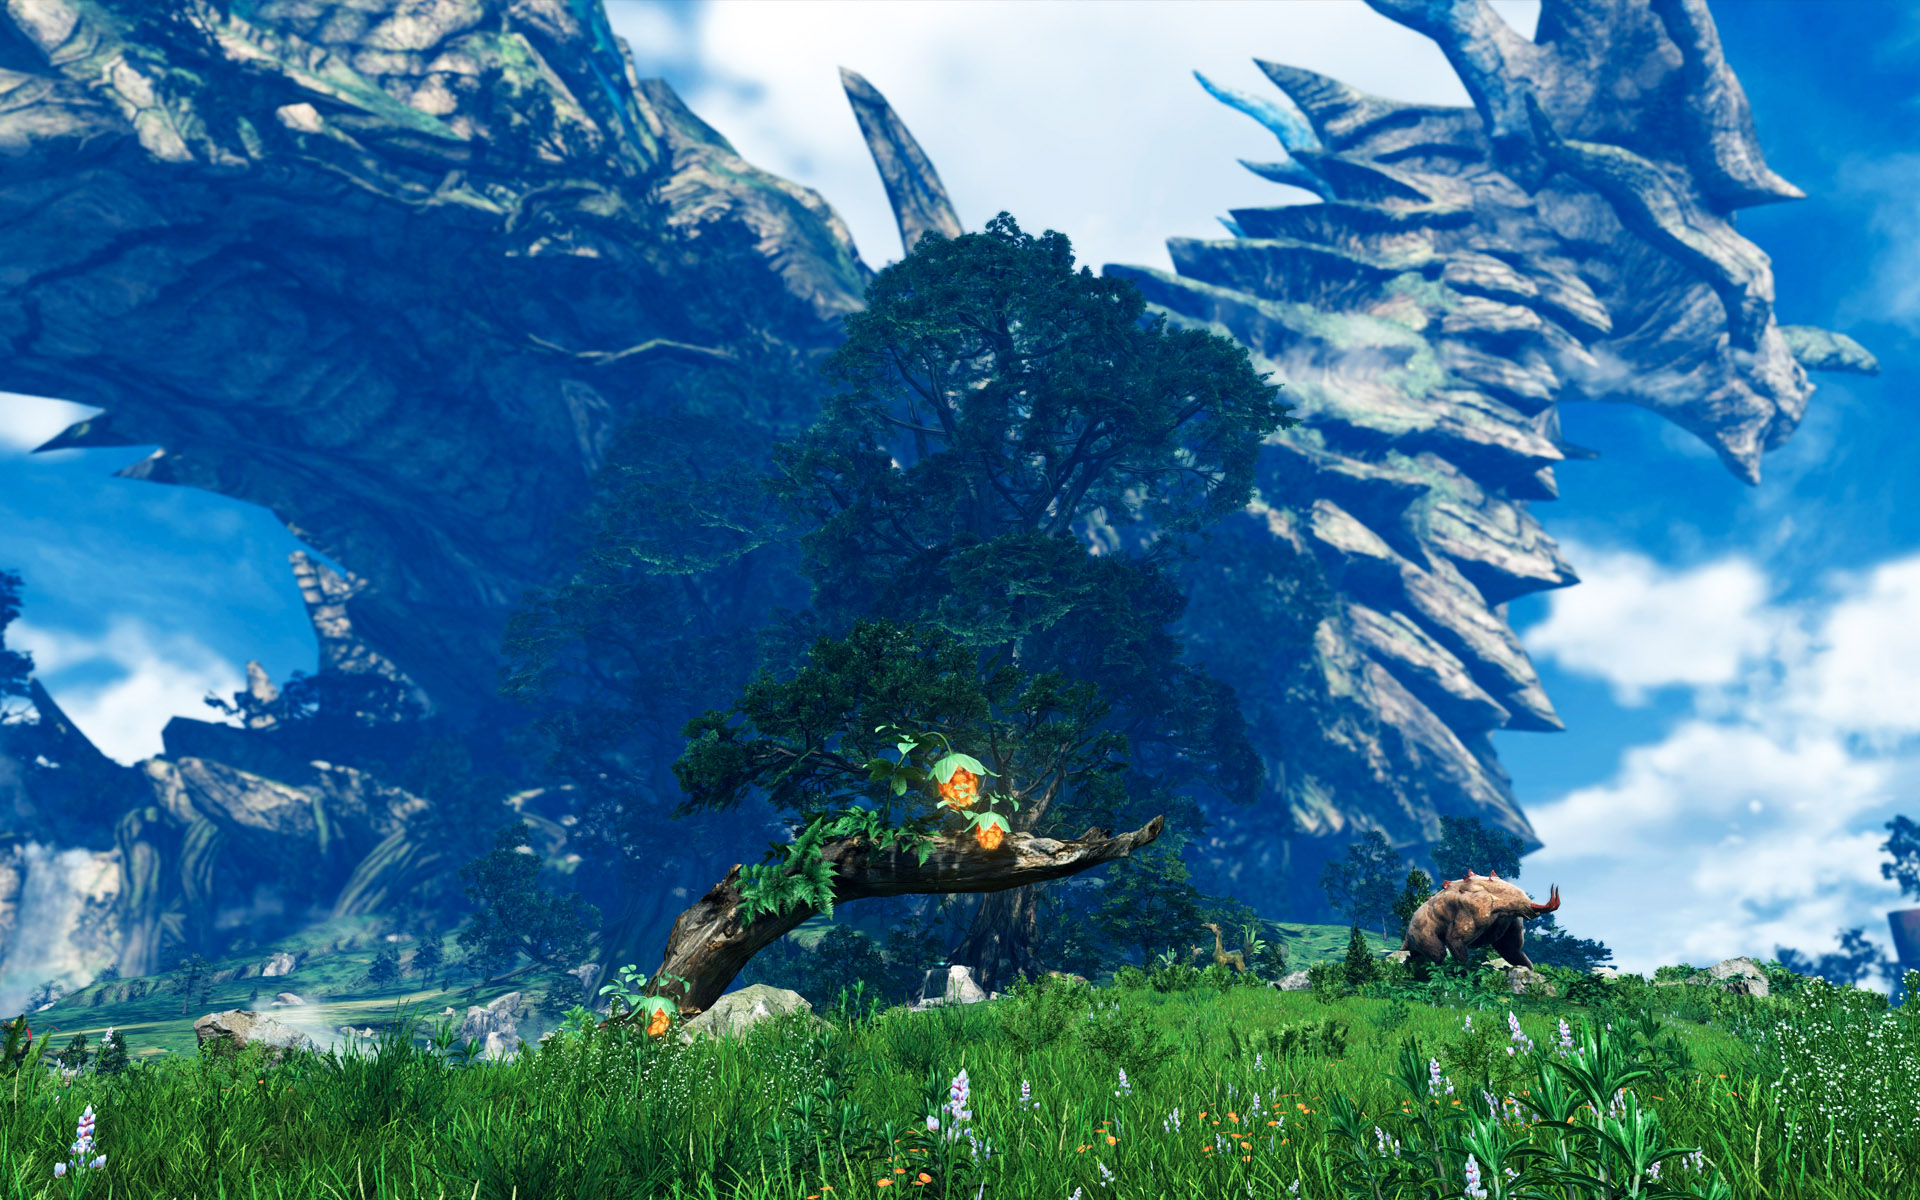 Xenoblade Chronicles 2 Scenic Desktop Wallpaper Collection